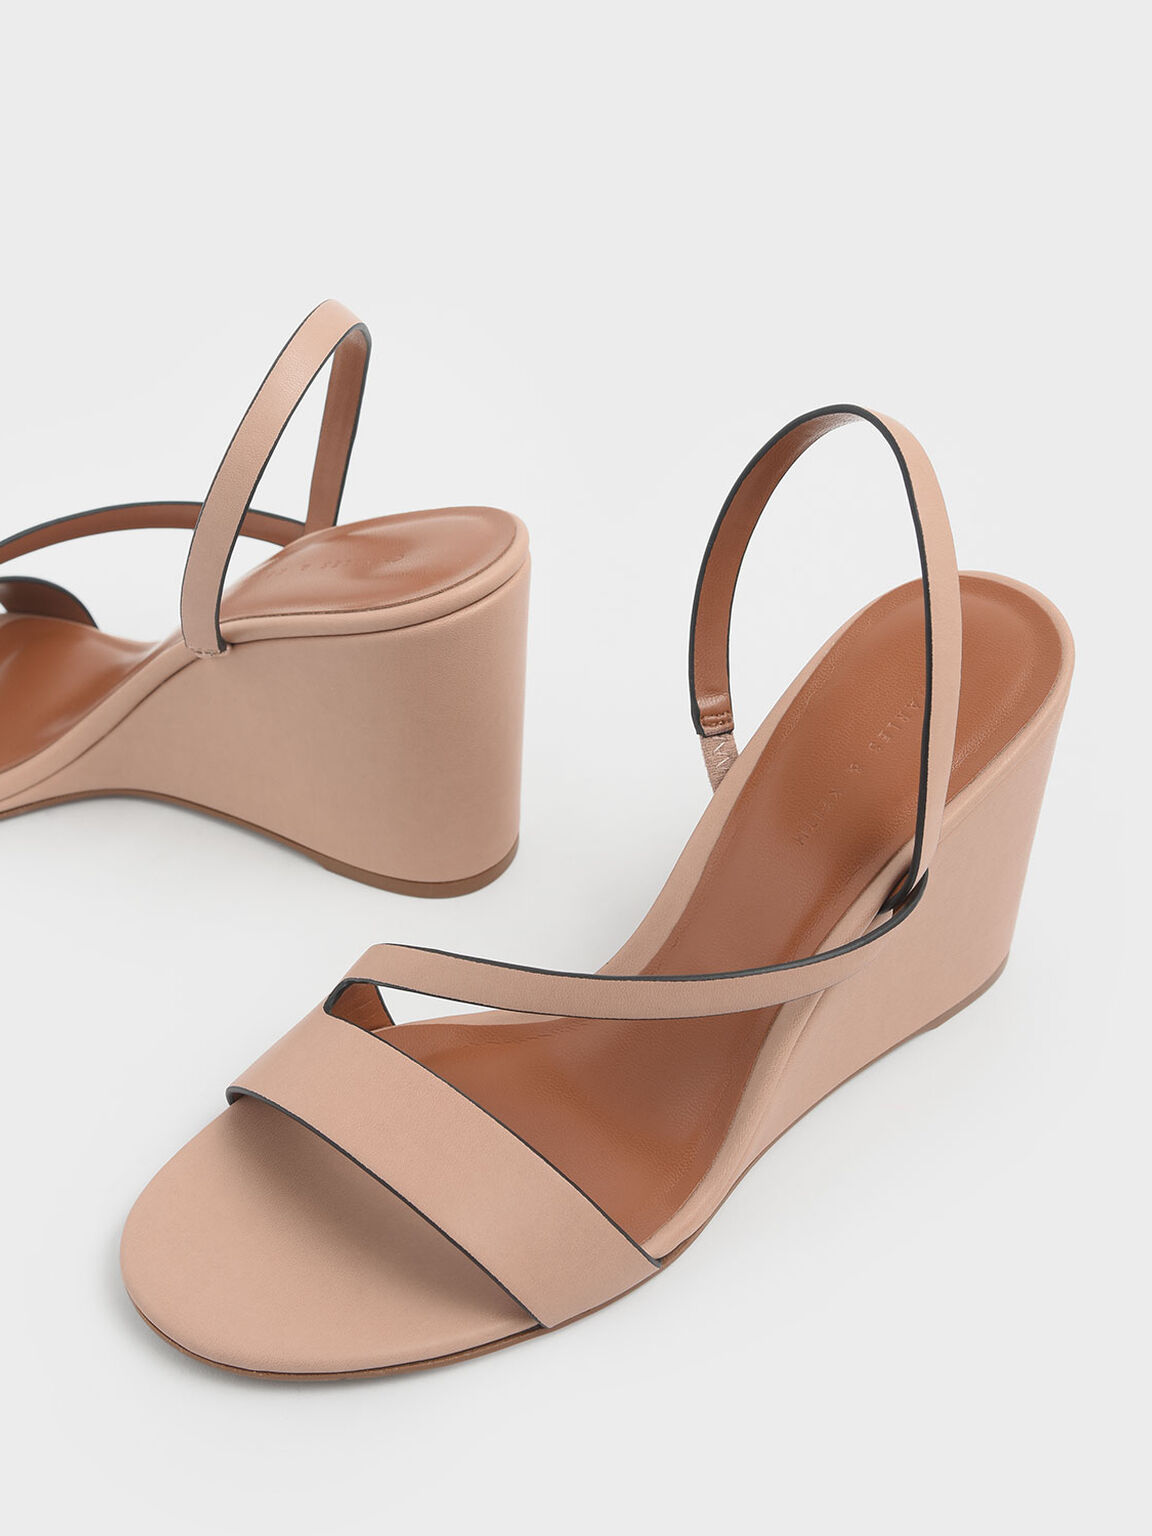 Asymmetric Strap Slingback Wedges, Nude, hi-res